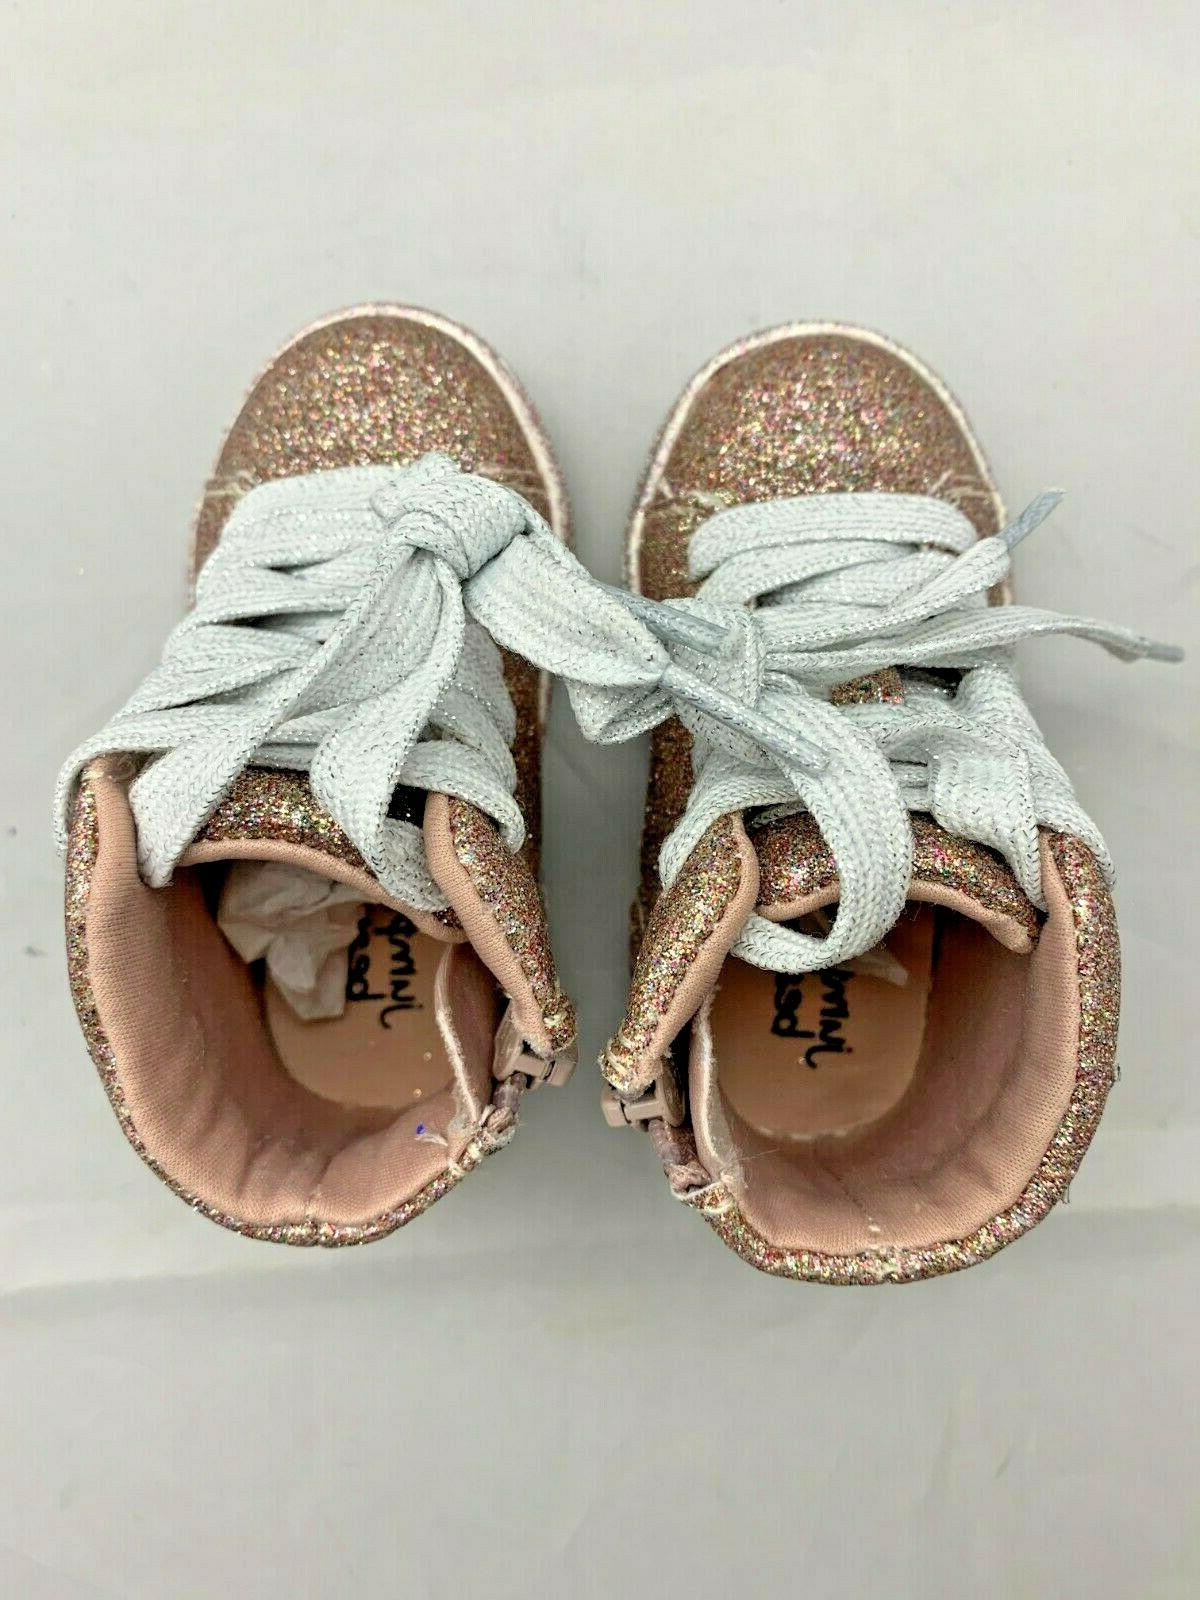 5T BEANS $40 Pink Top Shoes Glitter! Toddler Girl